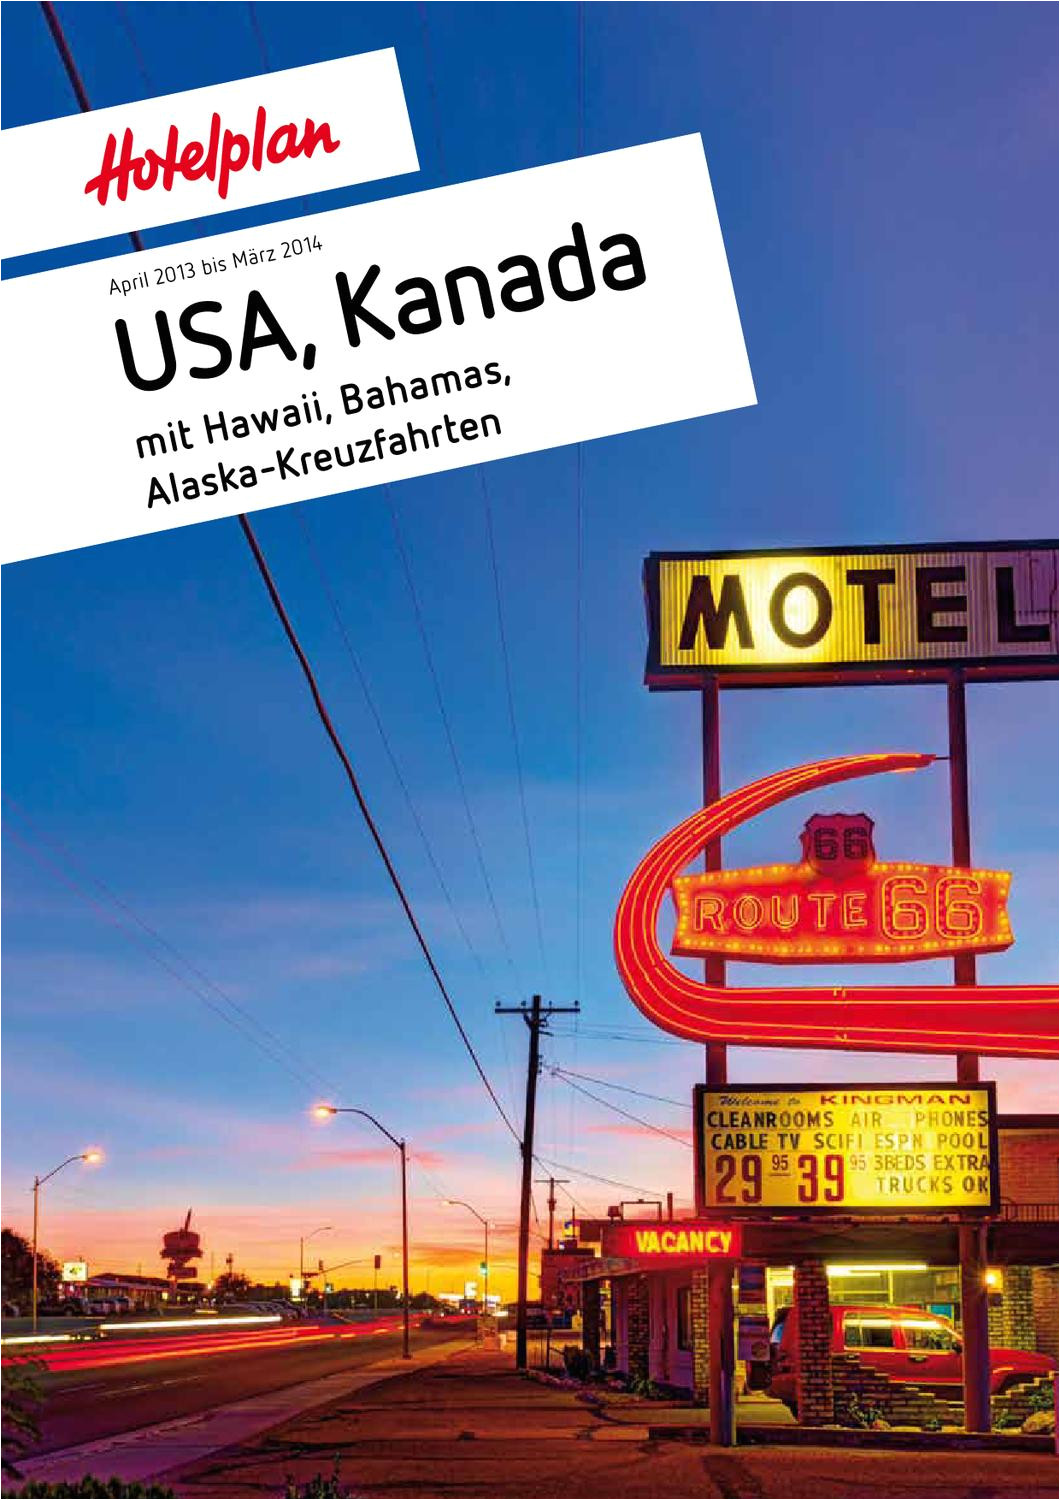 hotelplan usa kanada april 2013 bis marz 2014 by hotelplan suisse mtch ag issuu